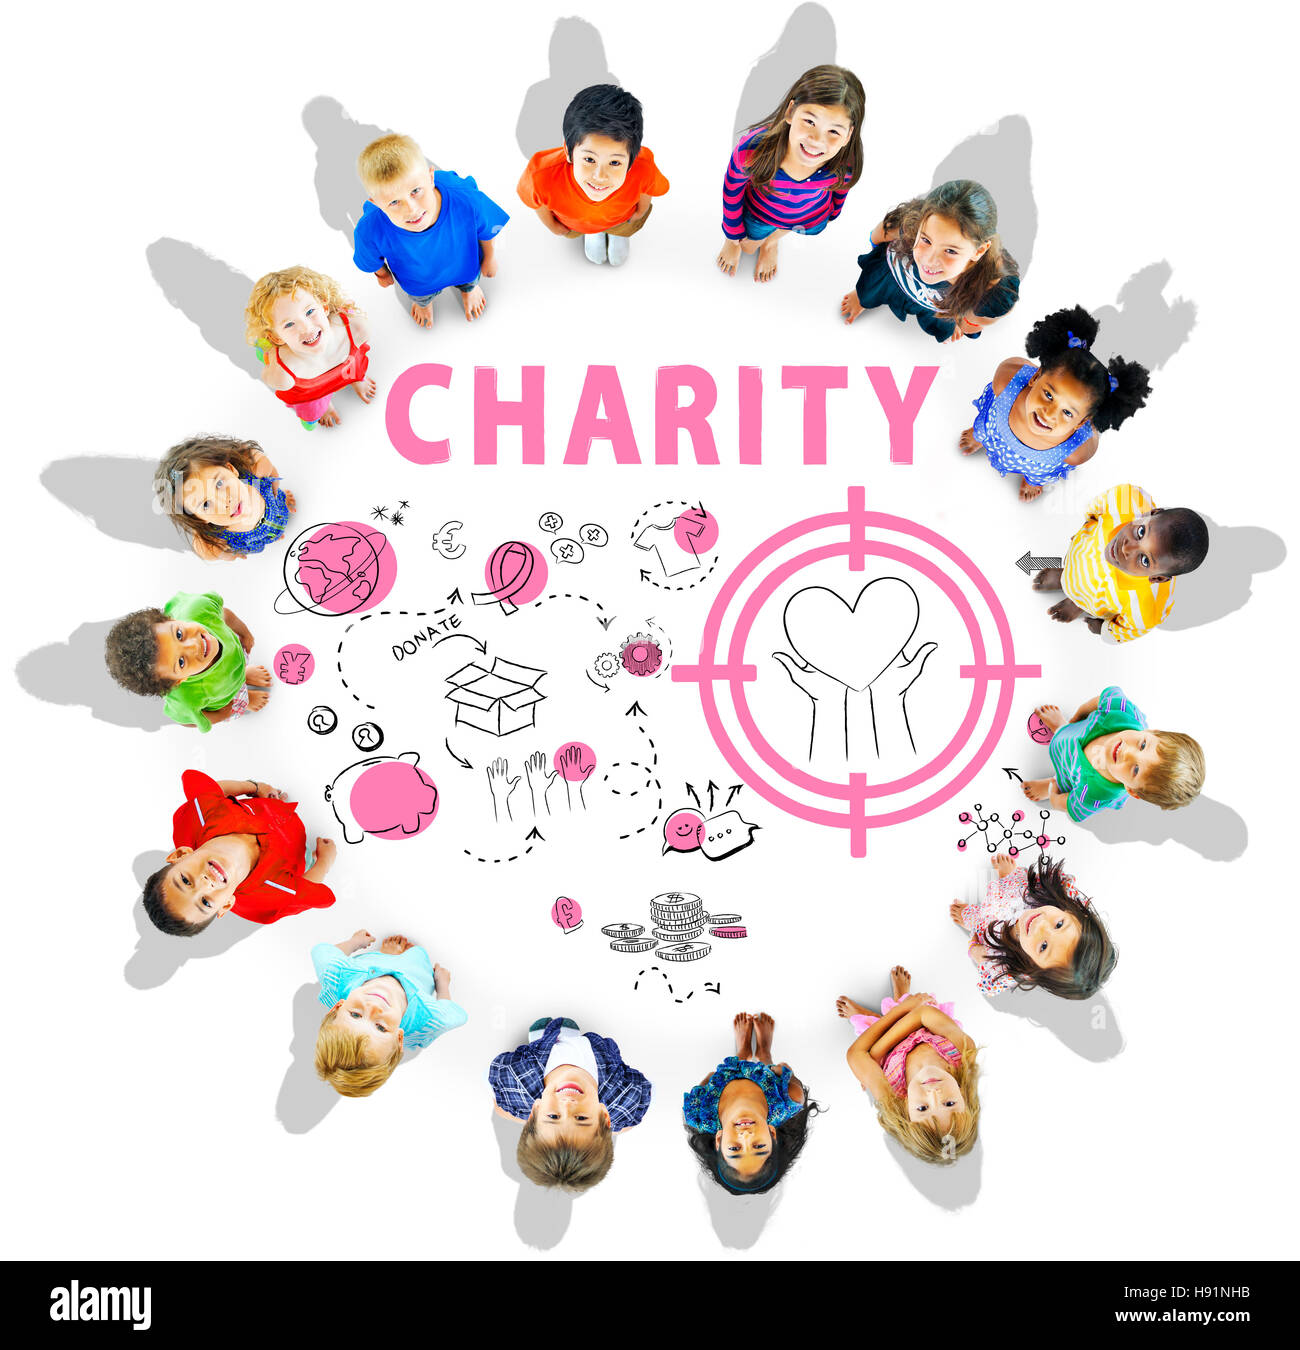 Charity Aid Donation Awareness Concept - Stock Image